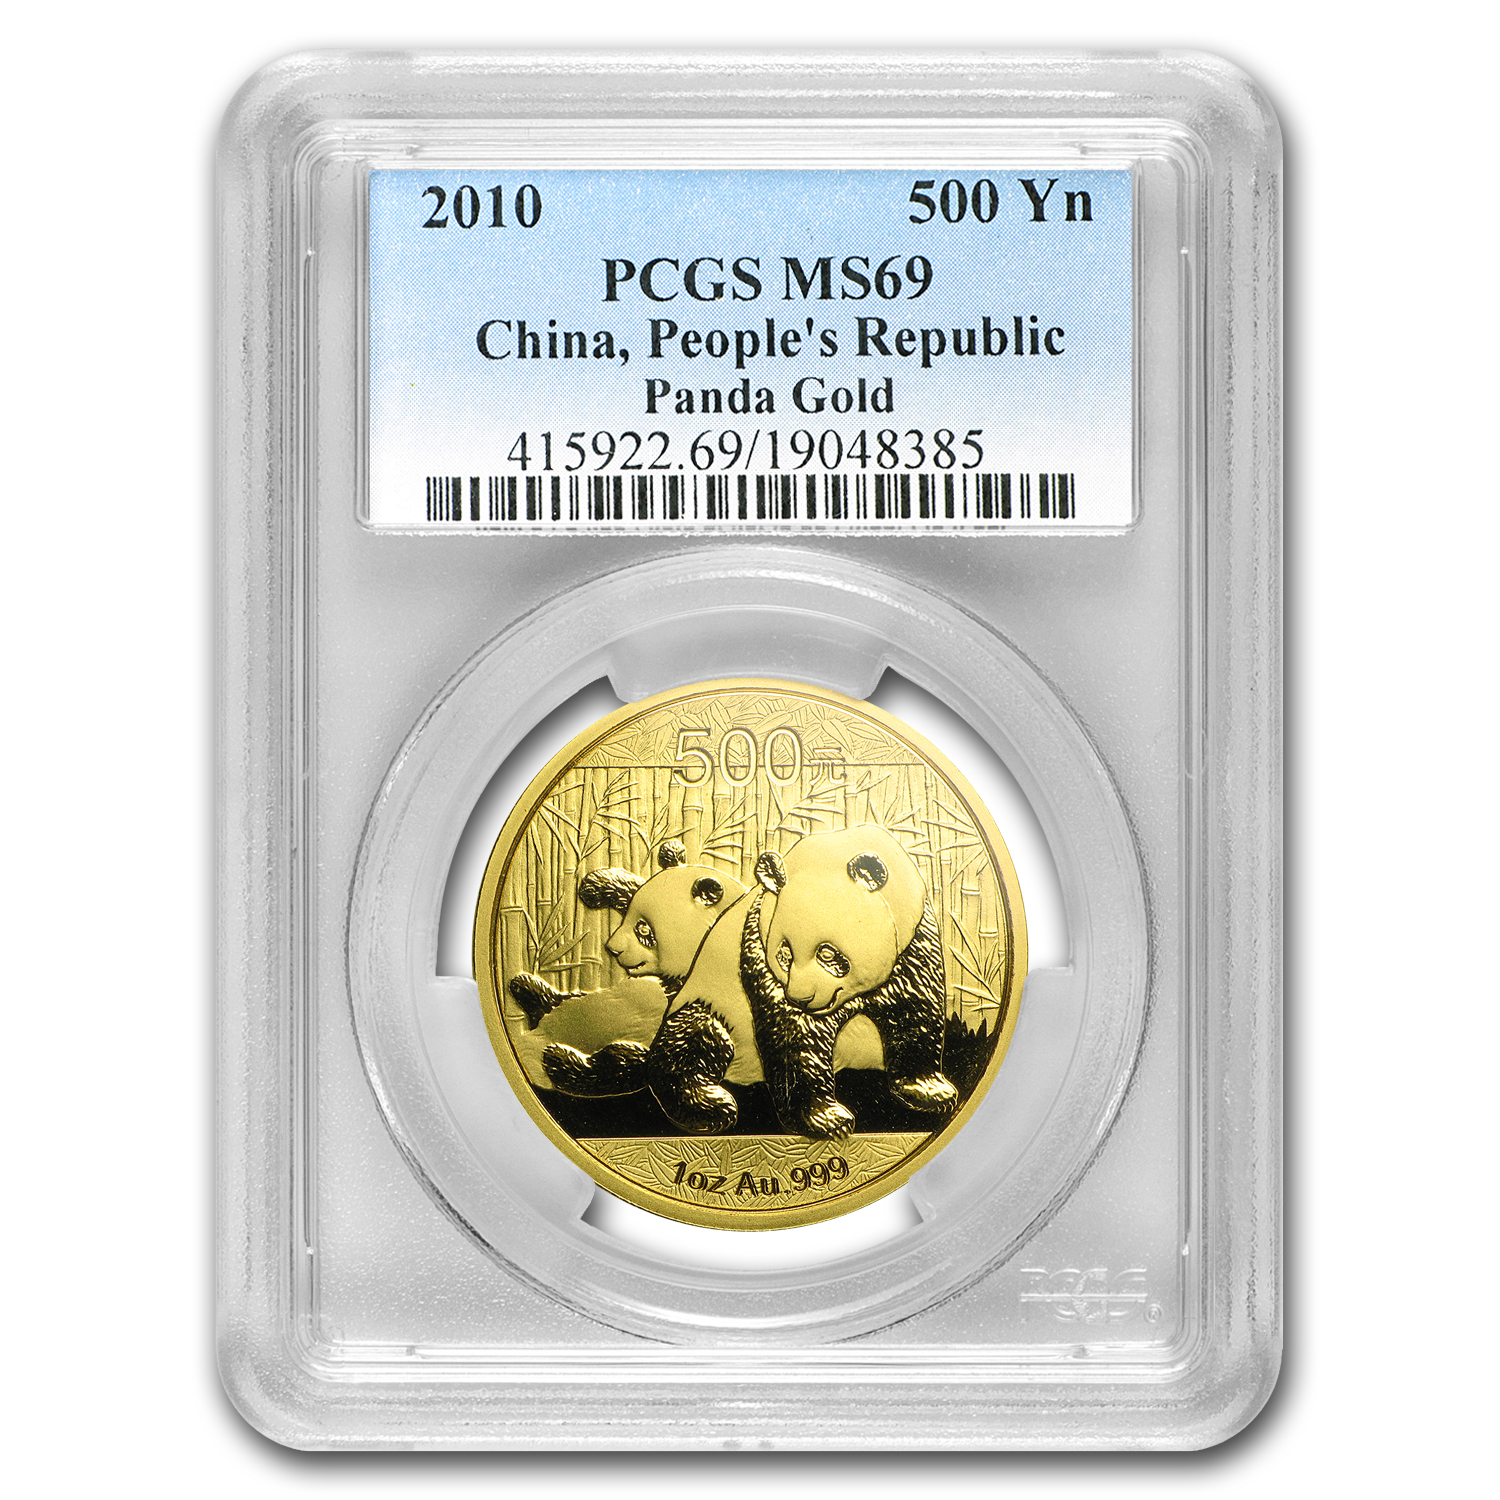 2010 1 oz Gold Chinese Panda MS-69 PCGS